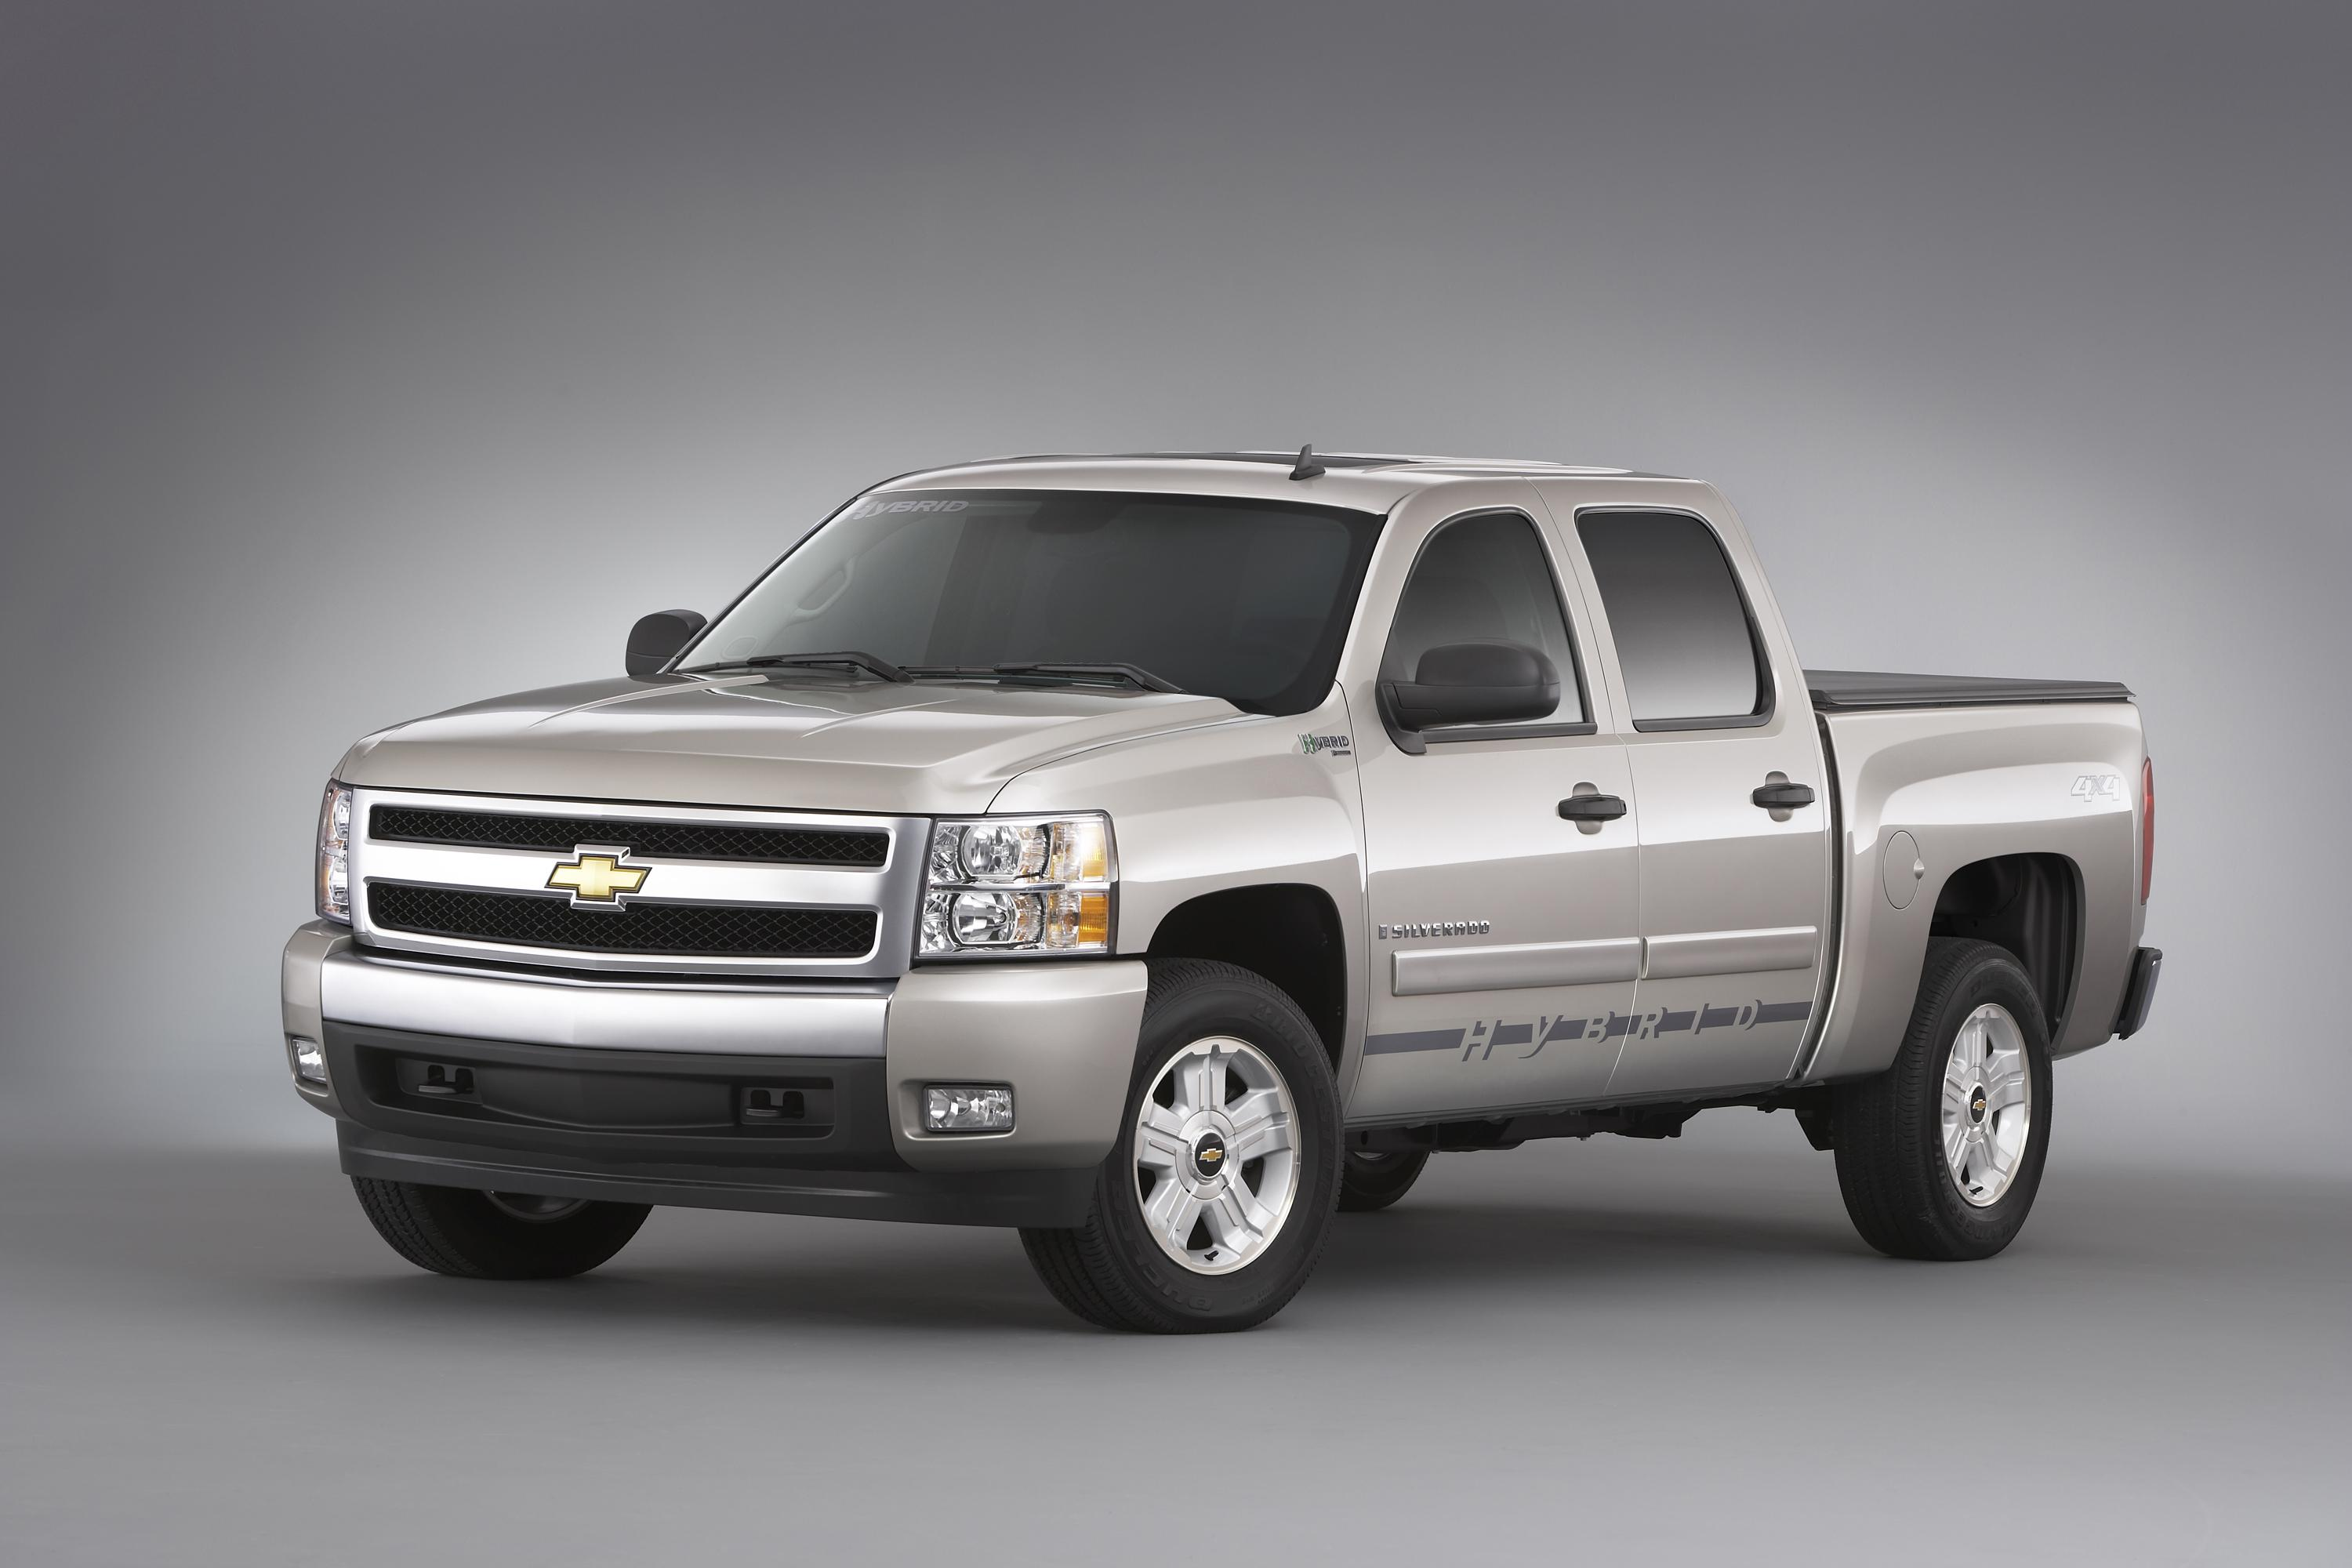 Affirming its commitment to fuel solutions and truck leadership chevrolet announced the 2009 chevrolet silverado hybrid a full size pickup that achieves